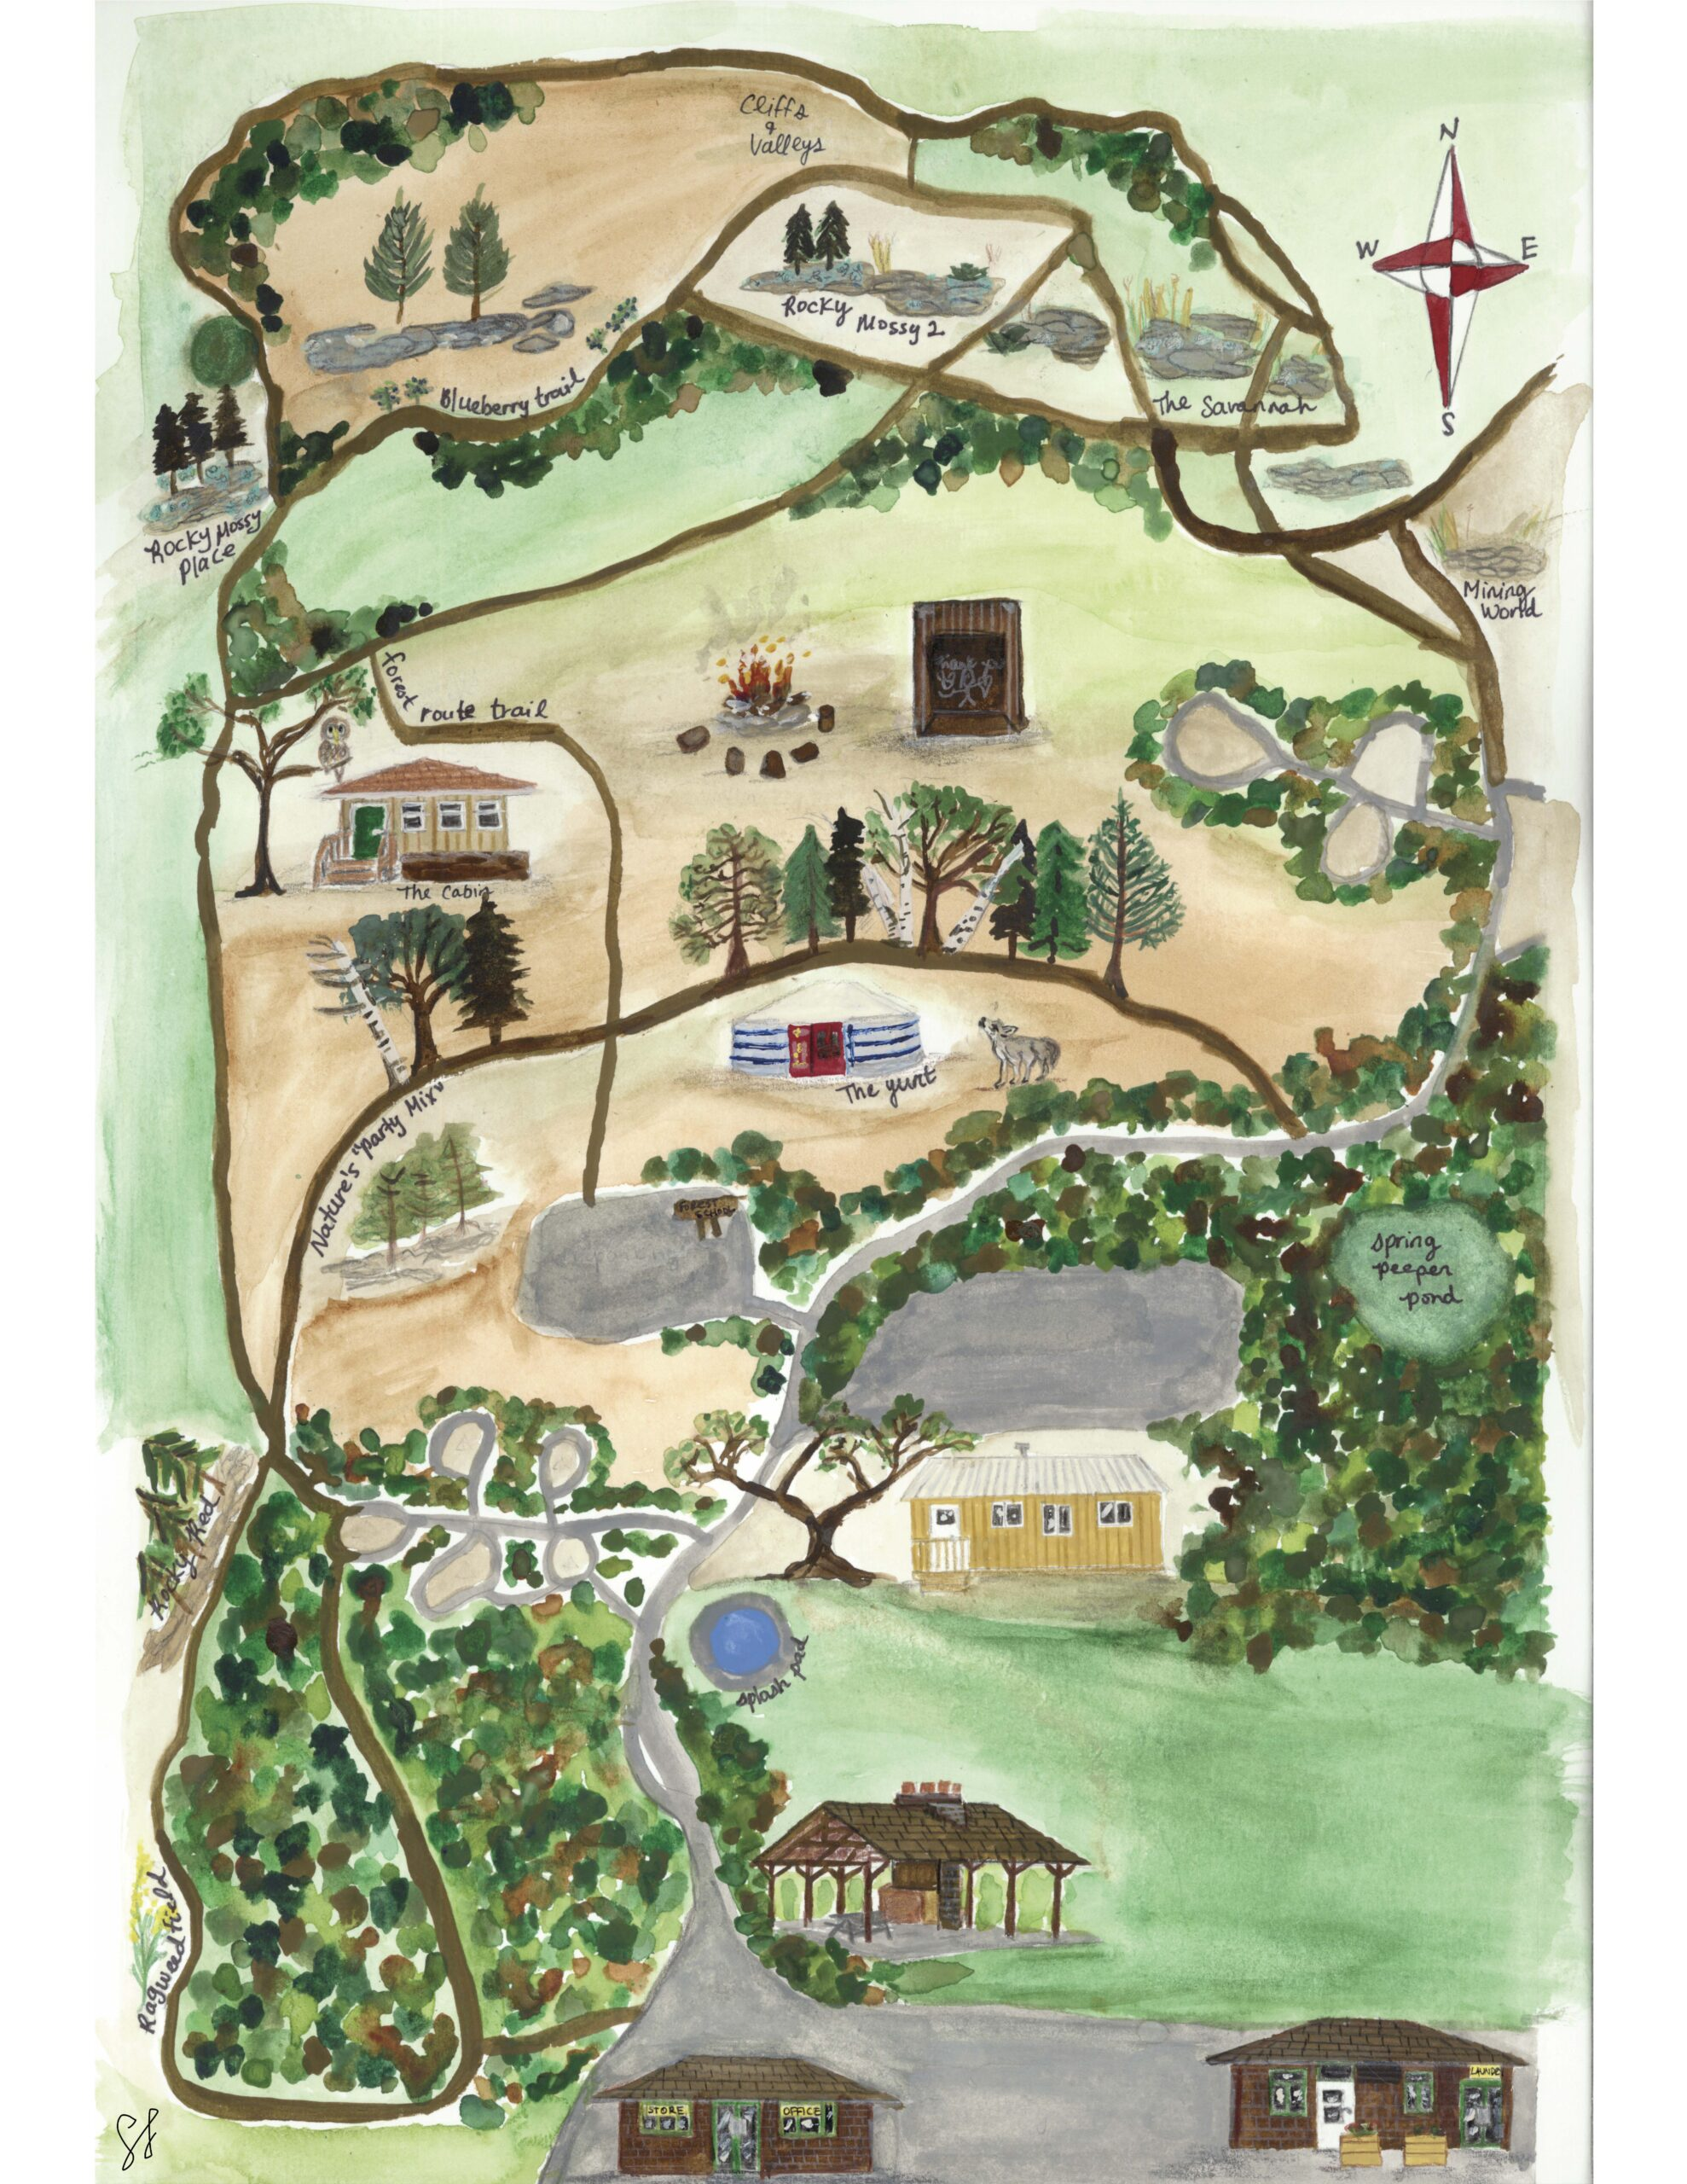 A watercolour map of the Ottawa Forest and Nature School